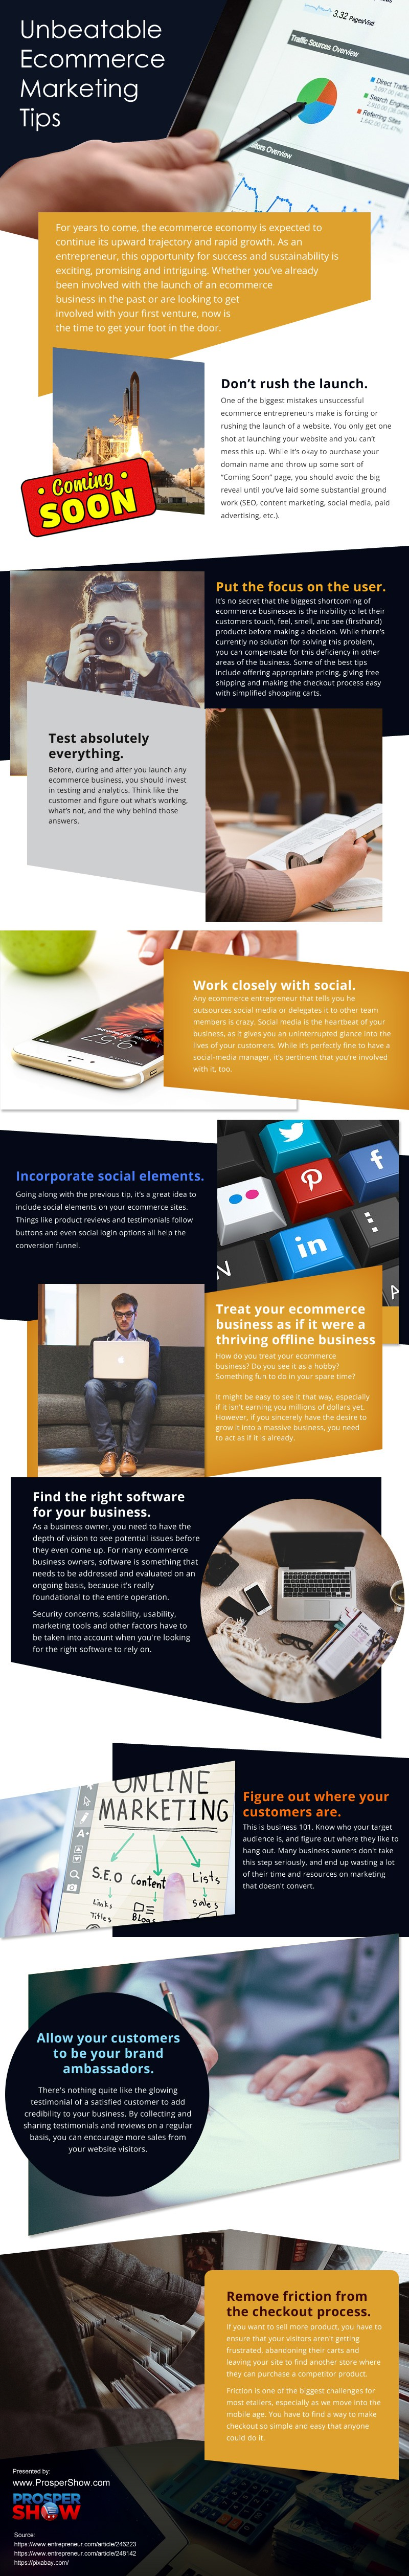 Unbeatable-Ecommerce-Marketing-Tips Infographic